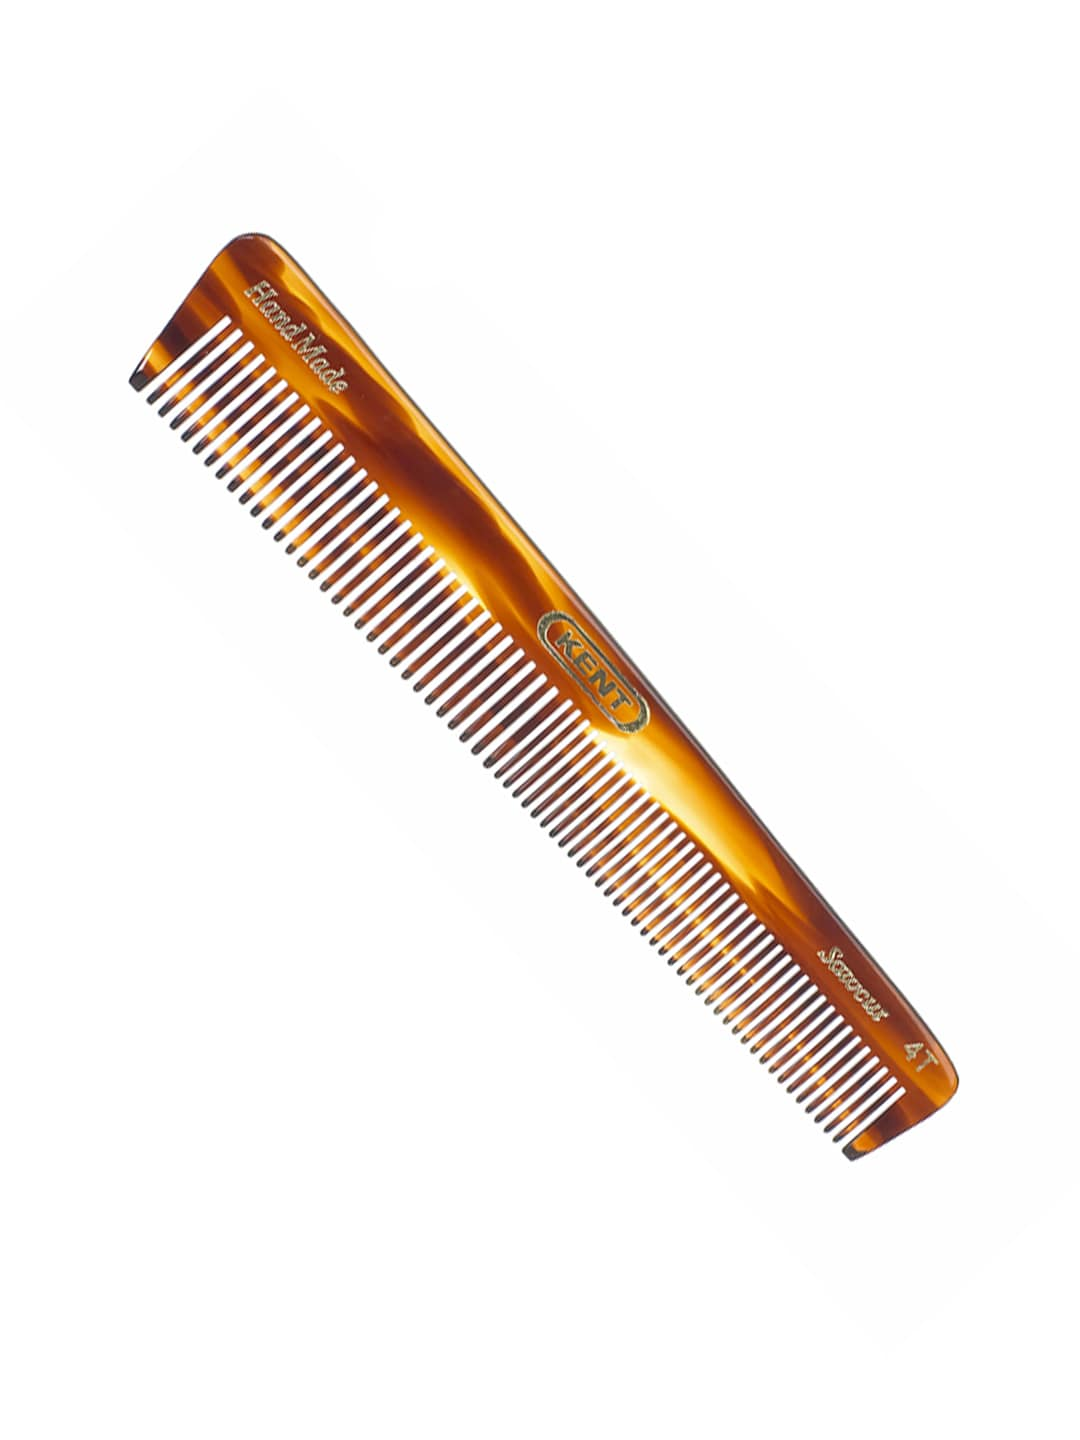 Kent Unisex Brown Handcrafted Comb 4T image